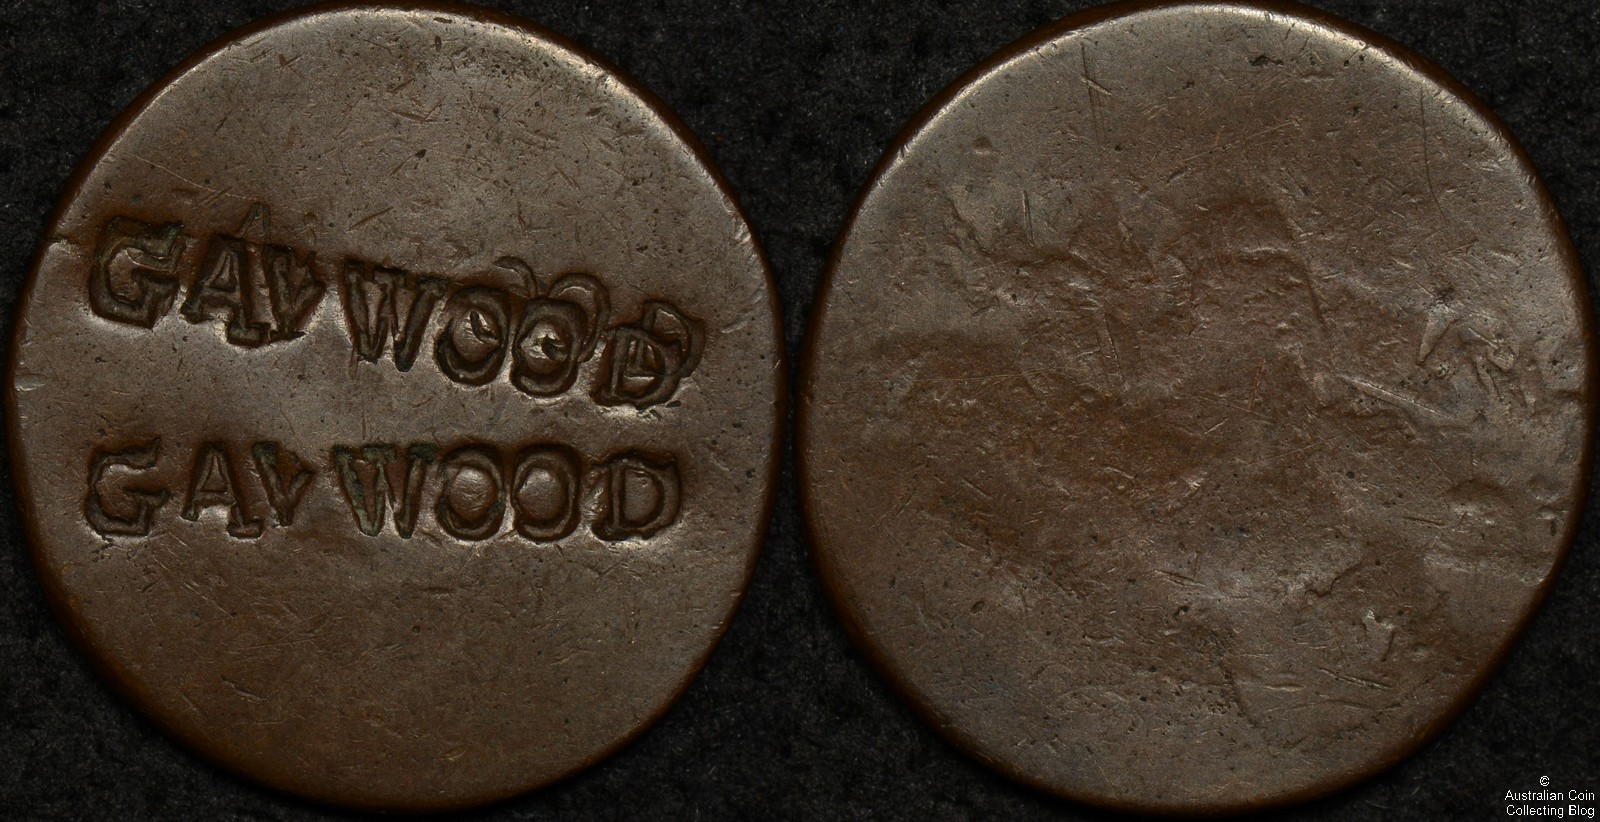 Counter Stamped 8.4g Bronze Disk GAV WOOD